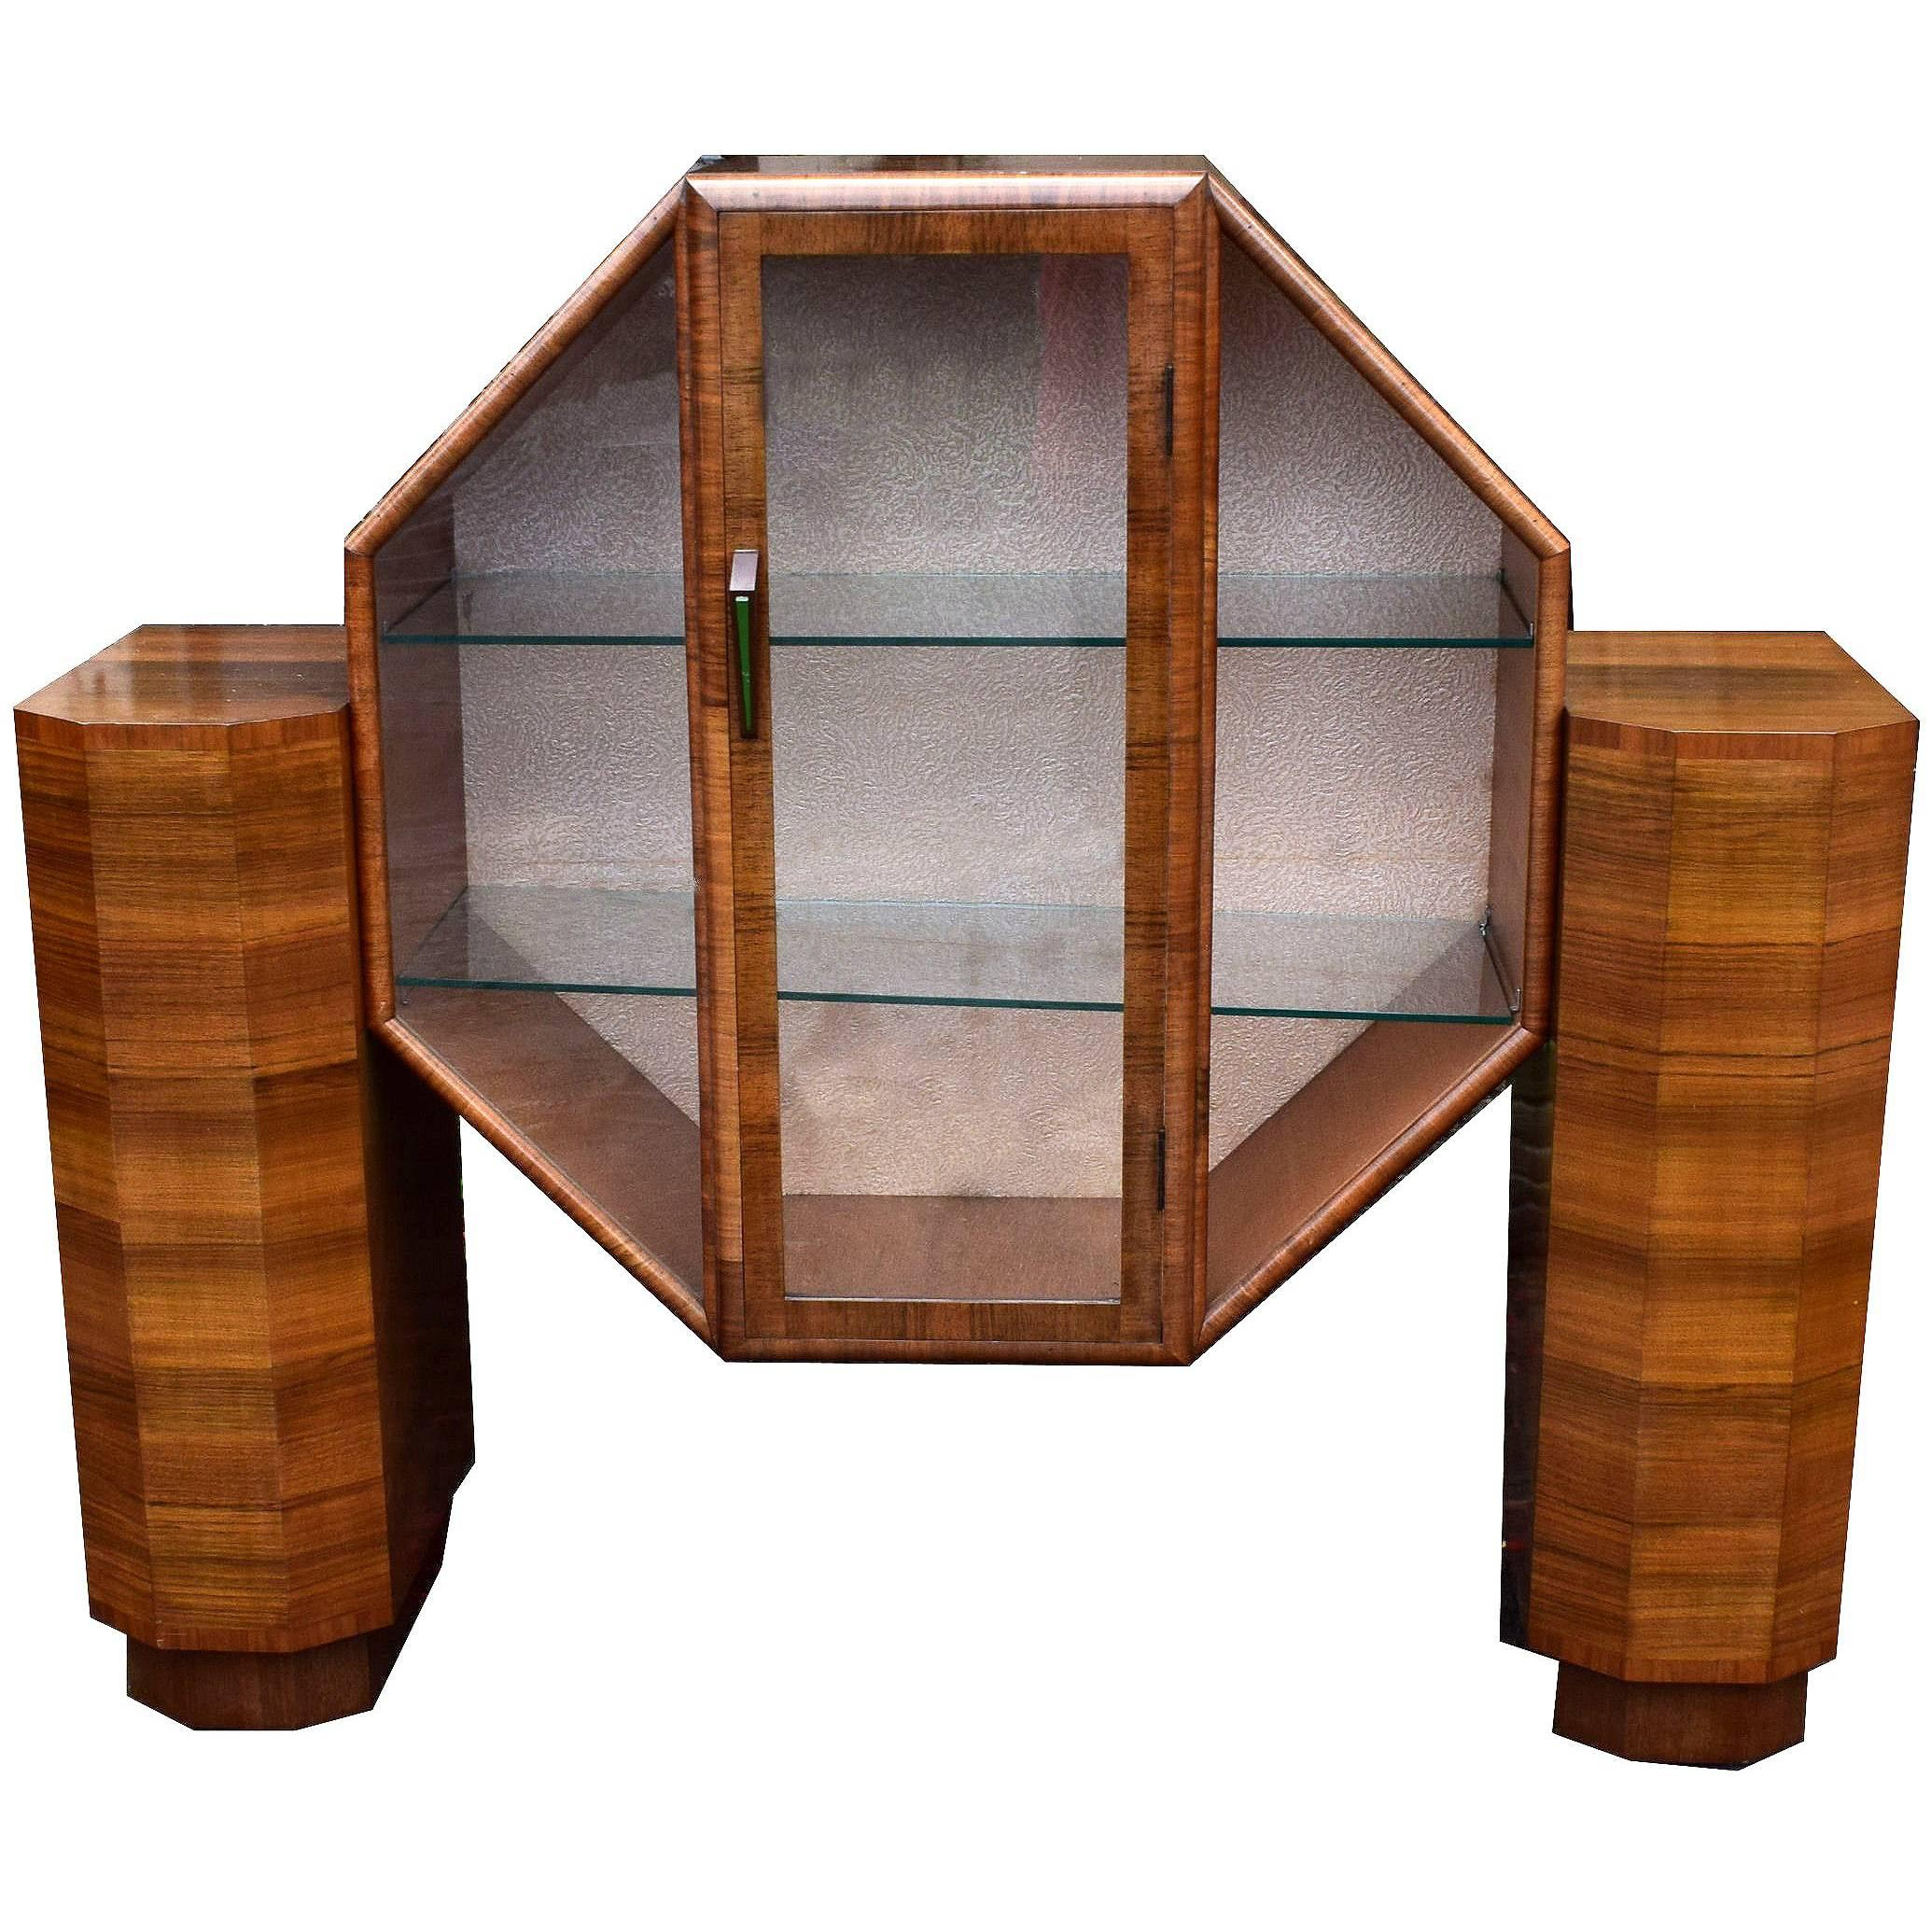 English Rare 1930s Art Deco Display Cabinet For Sale at 1stdibs